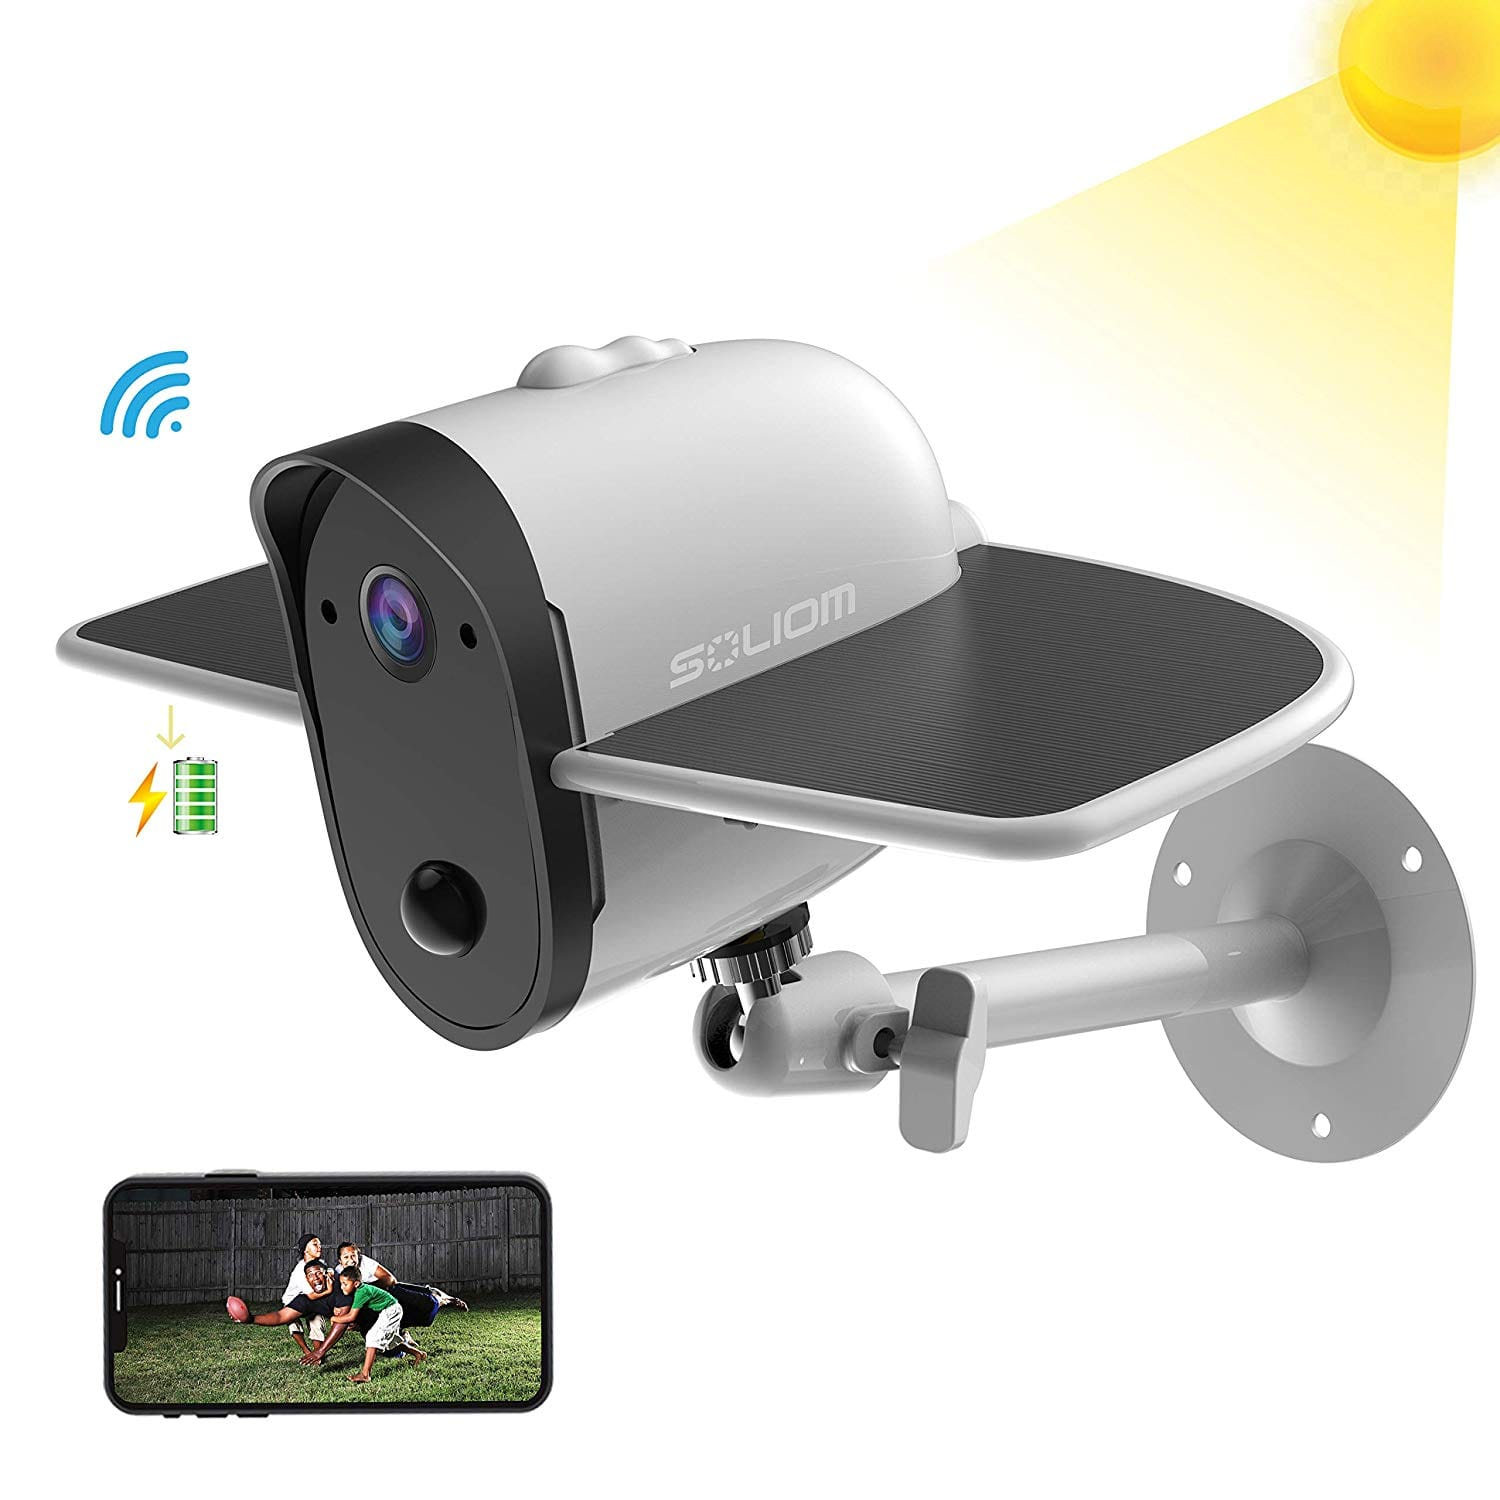 SOLIOM S60 Solar Battery Powered Security Camera. 1080P Home Wireless IP Cam with Accurate Motion Detection $67